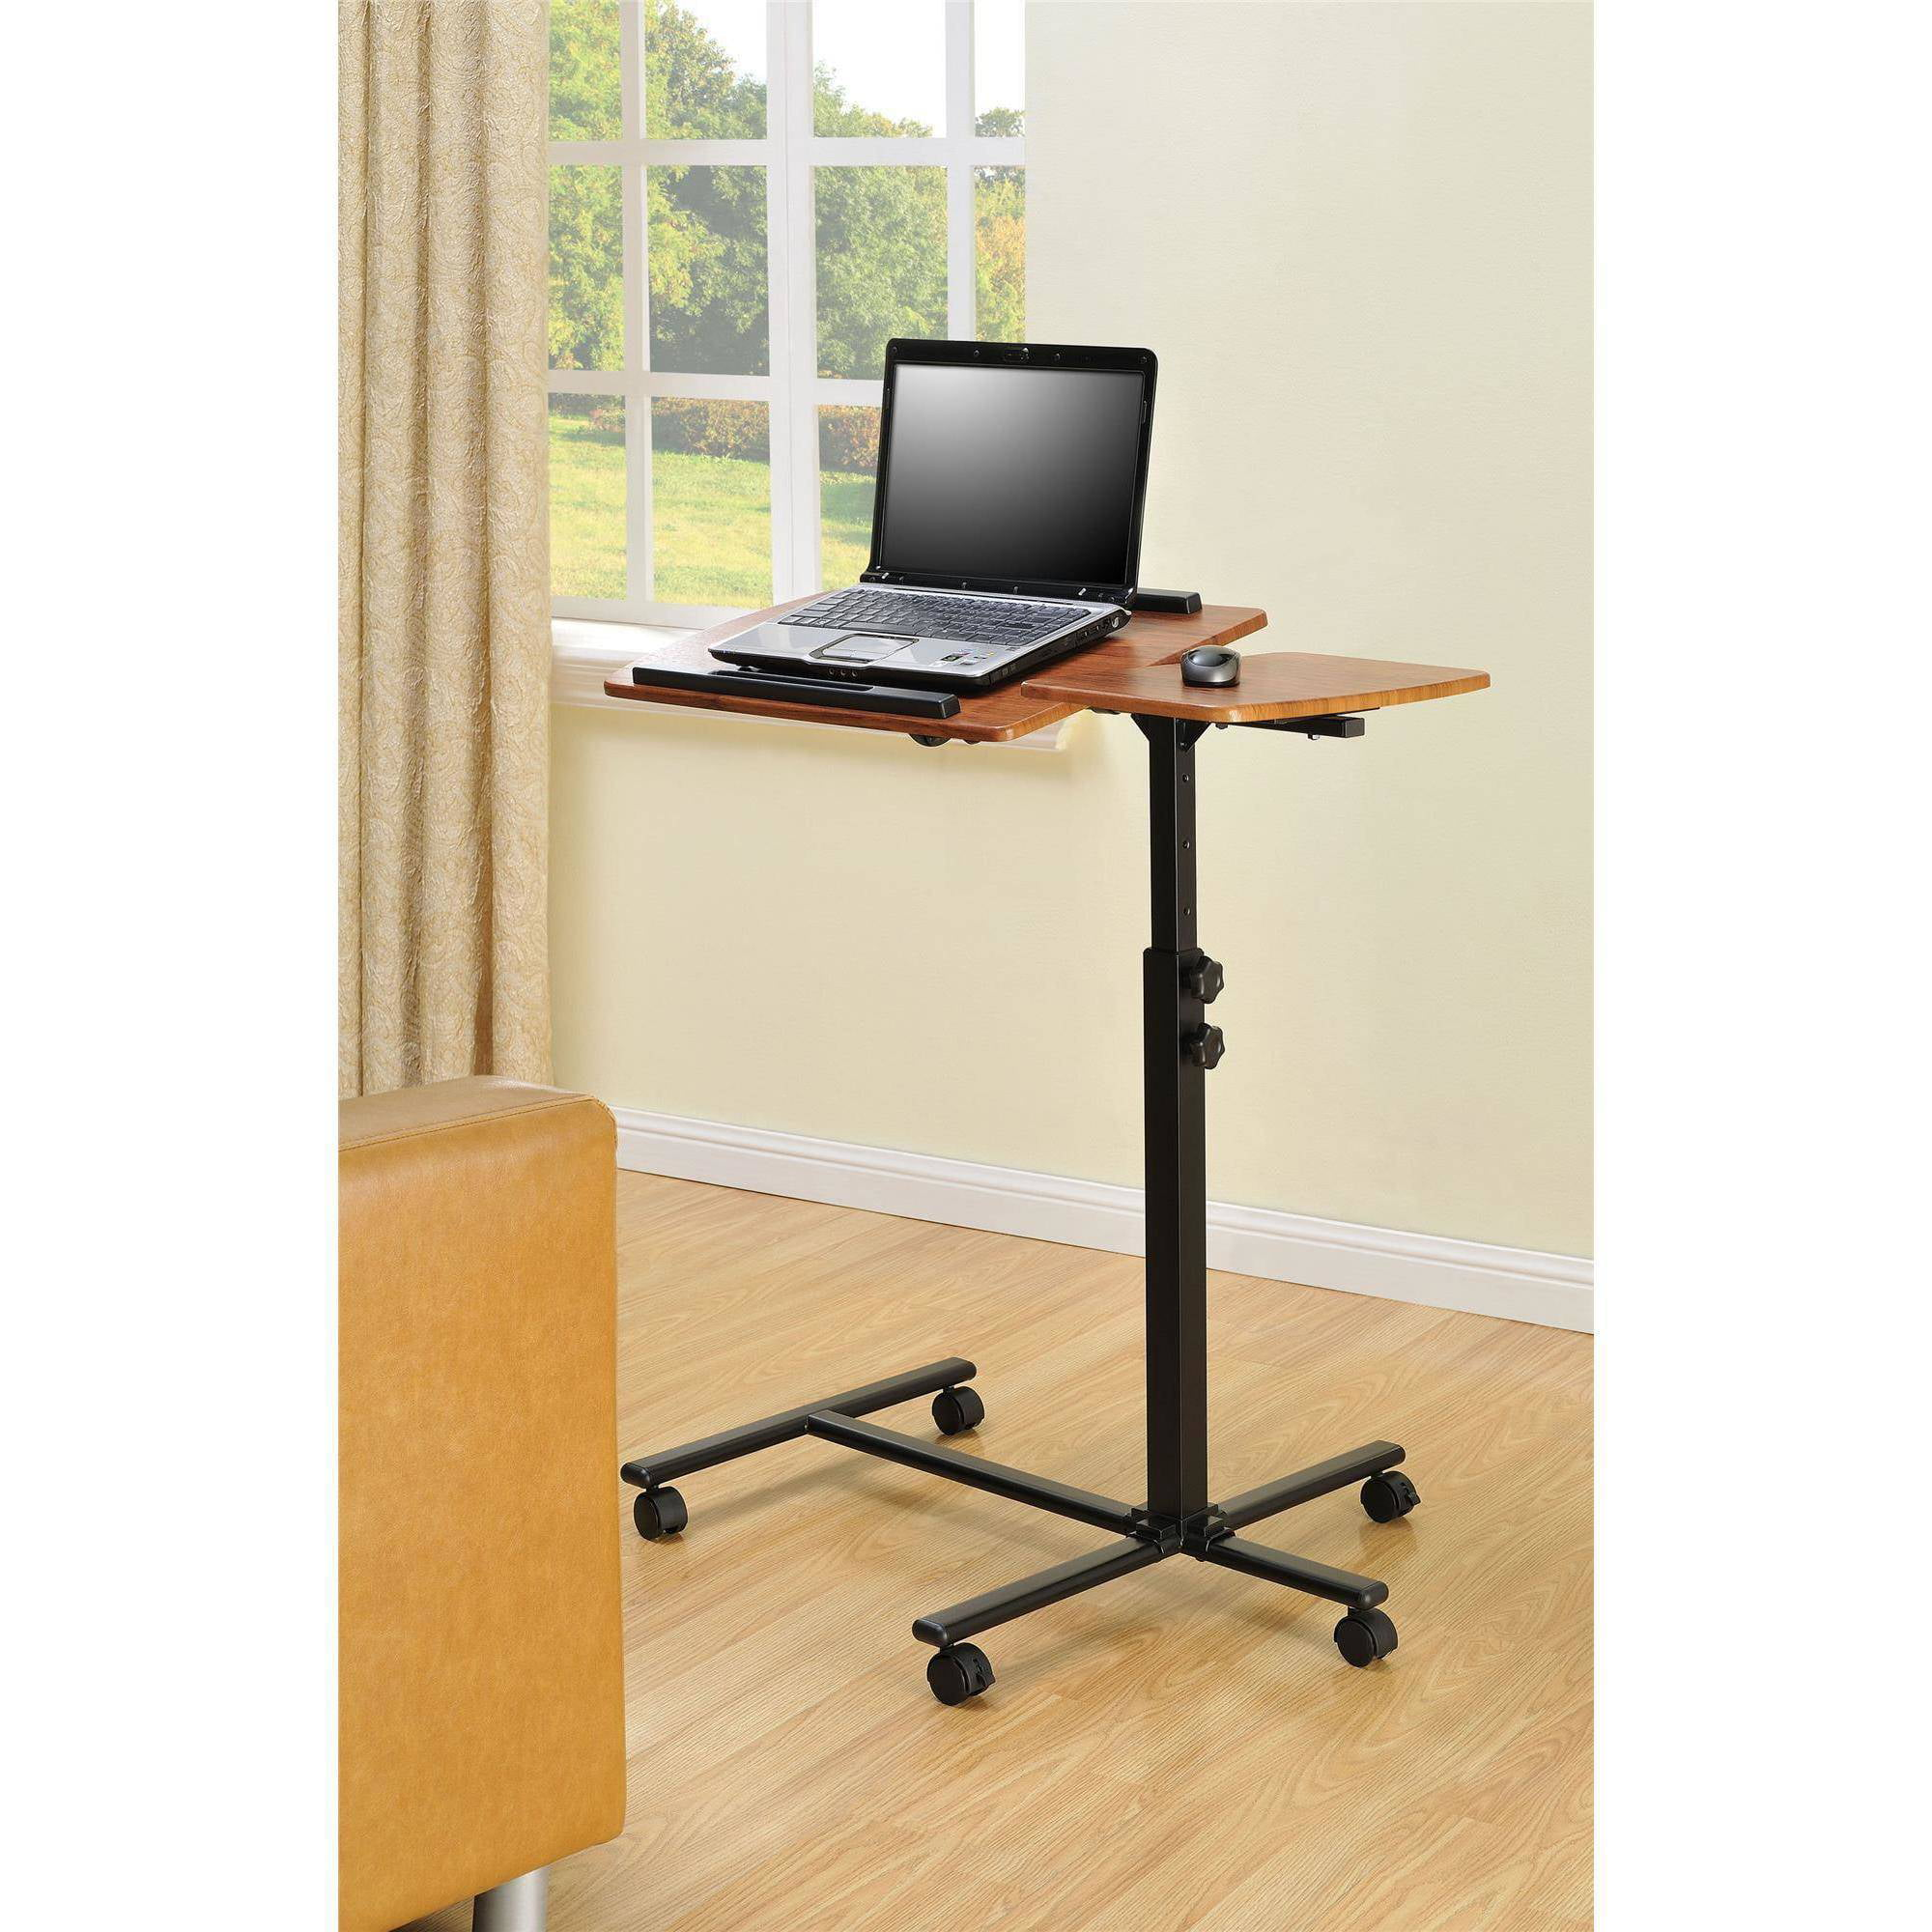 Modern Laptop Table imountek multi-functional laptop table / laptop desk(black